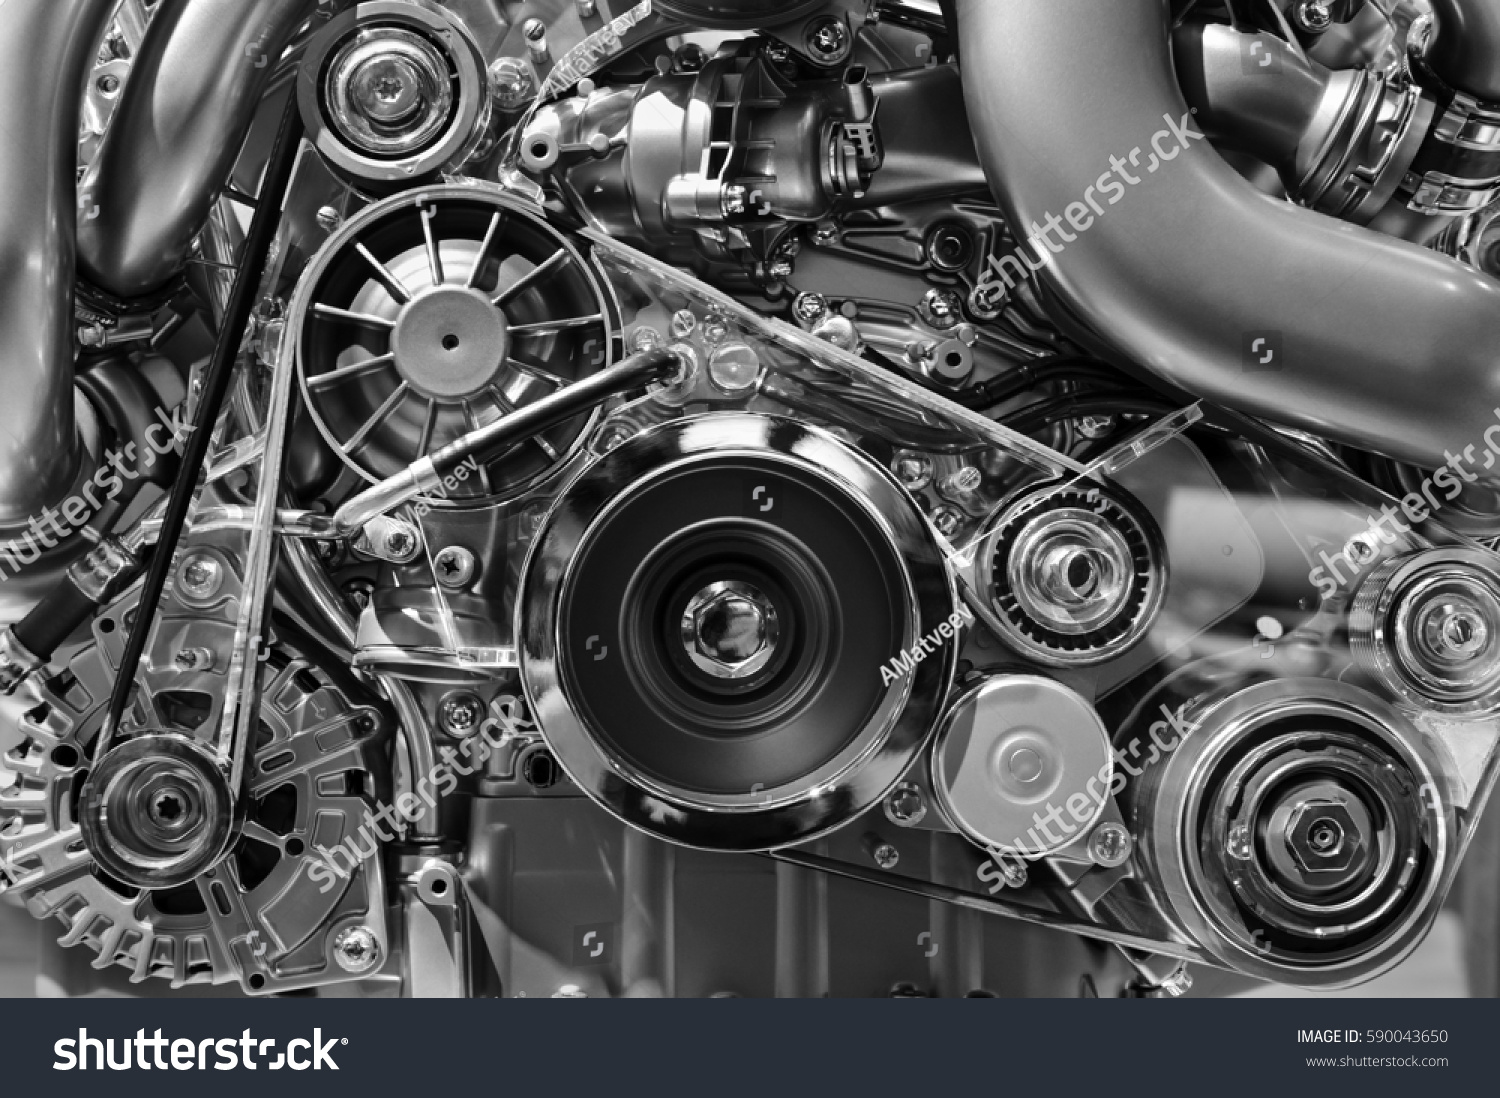 Car engine, concept of modern vehicle motor with metal, chrome, plastic parts, heavy industry, monochrome  #590043650